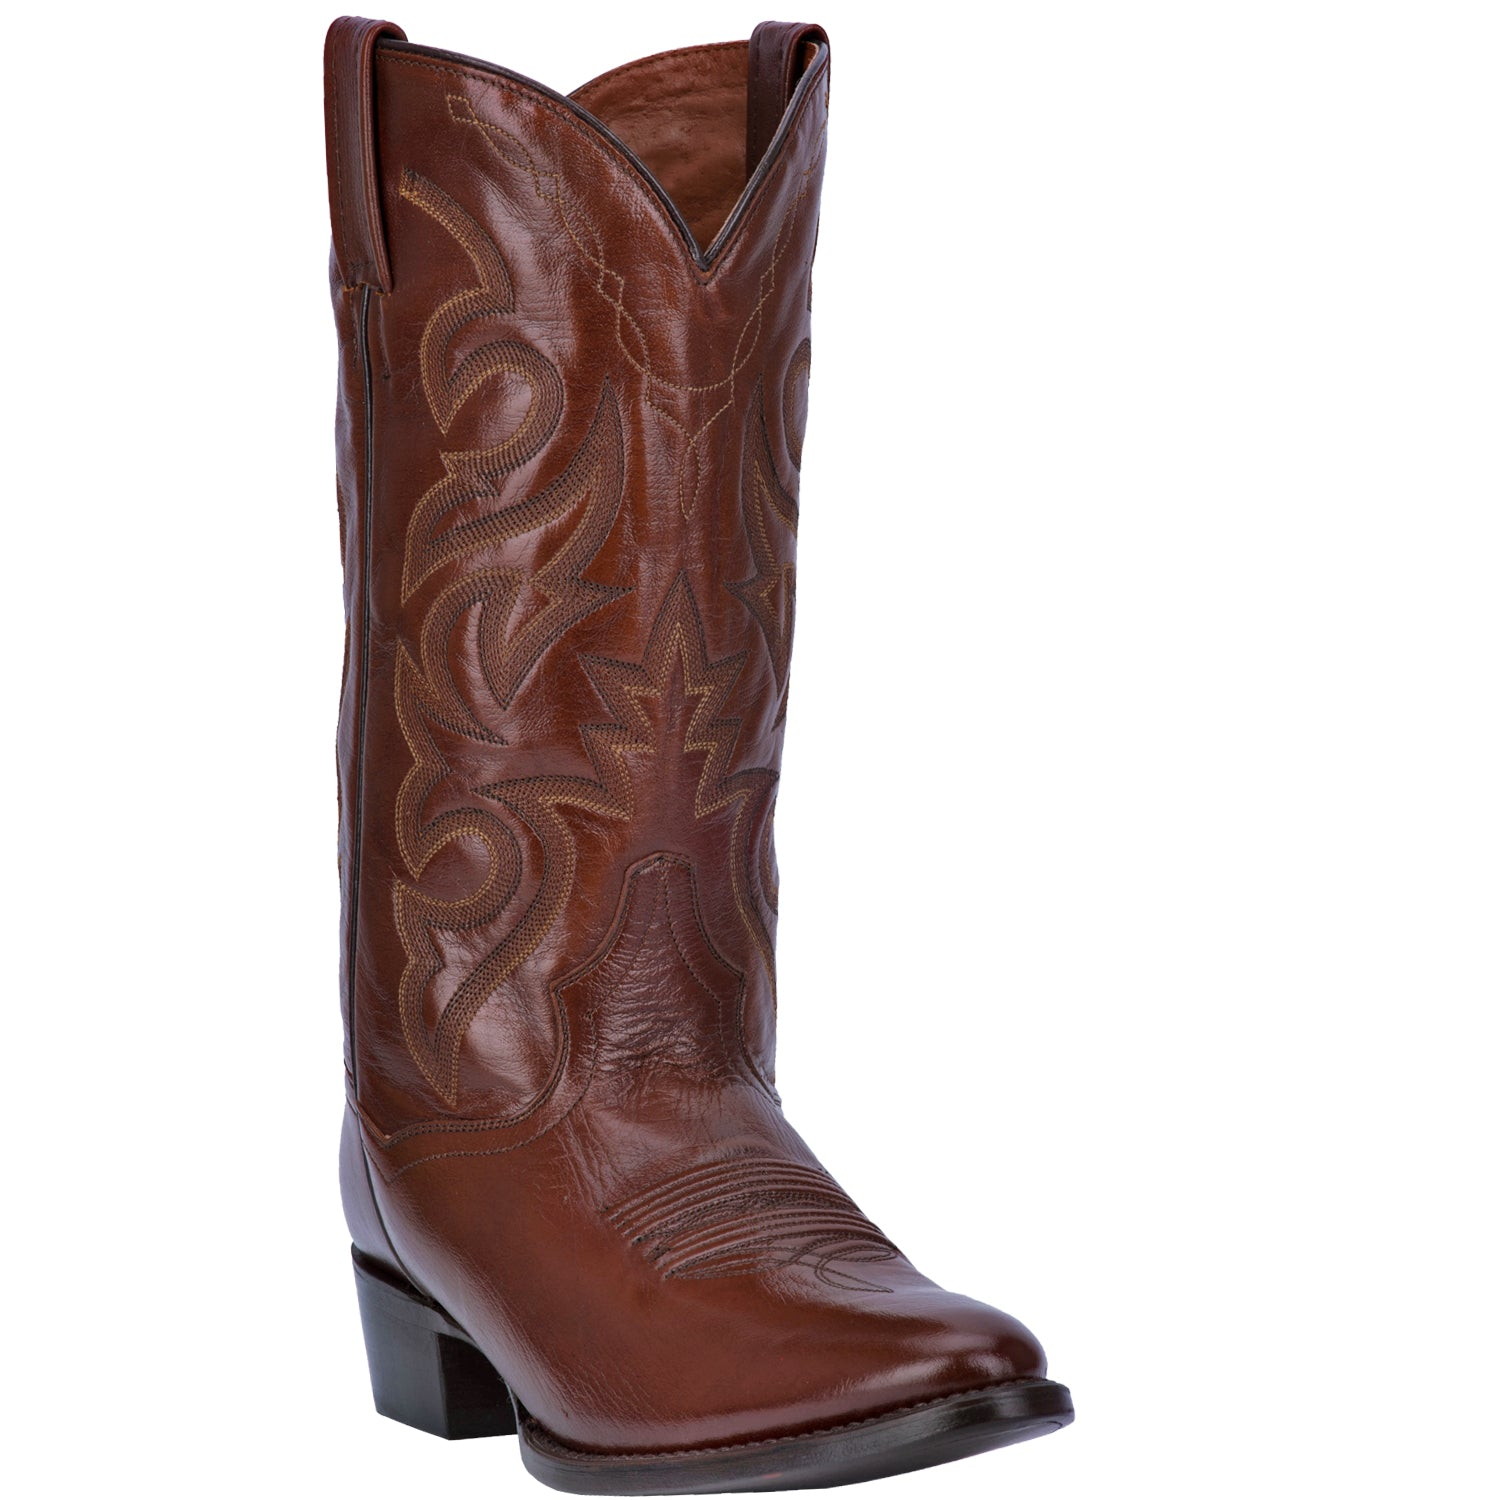 MILWAUKEE LEATHER BOOT